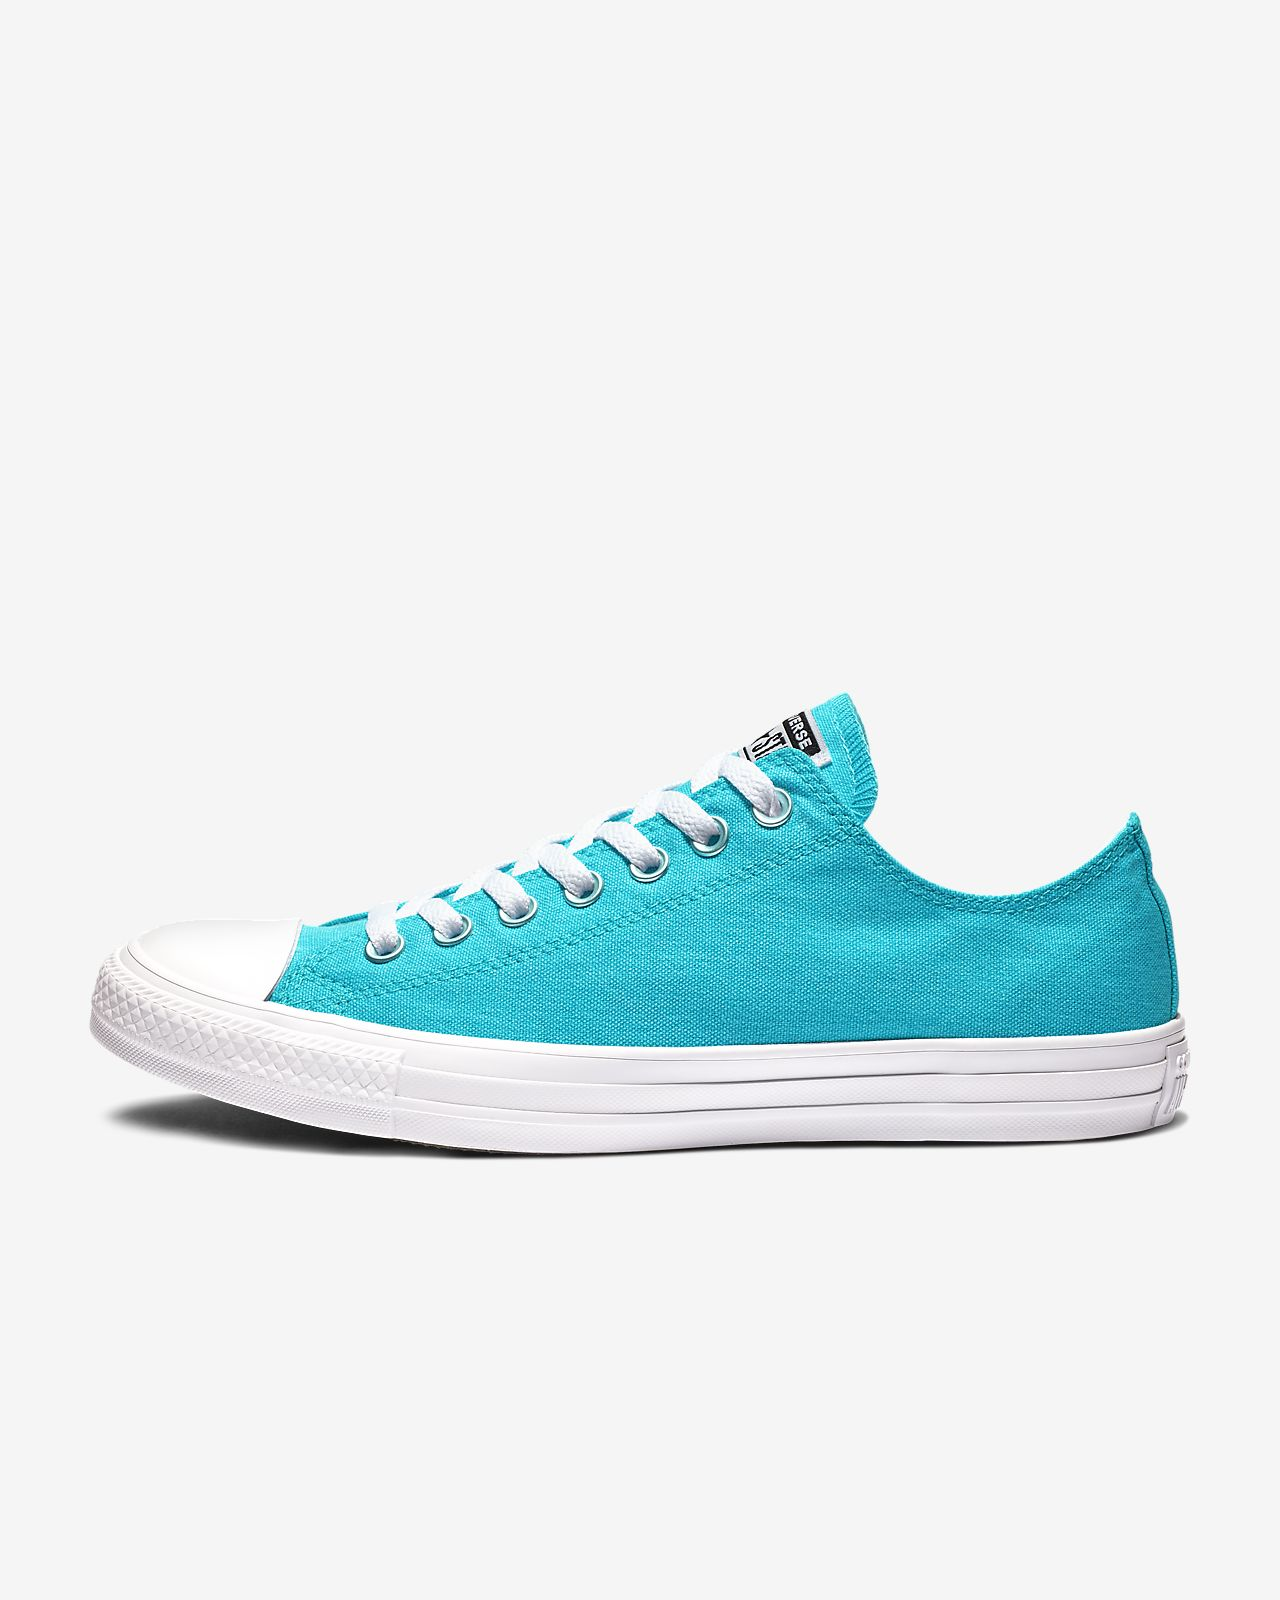 Converse Chuck Taylor All Star Court Fade Low Top  Unisex Shoe